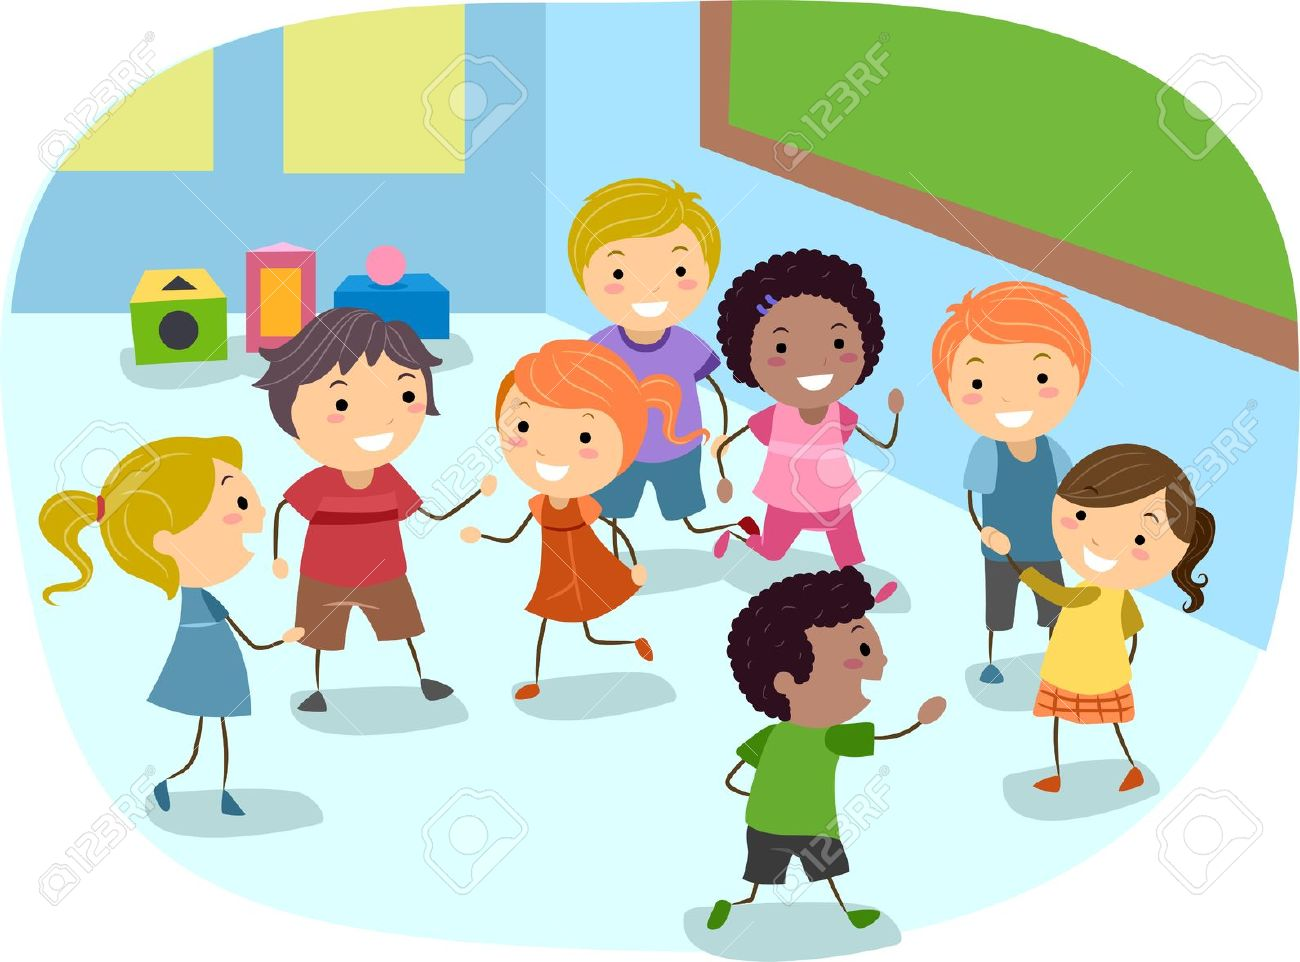 10132508-Illustration-of-Kids-Playing-in-the-Classroom-Stock-Illustration-children